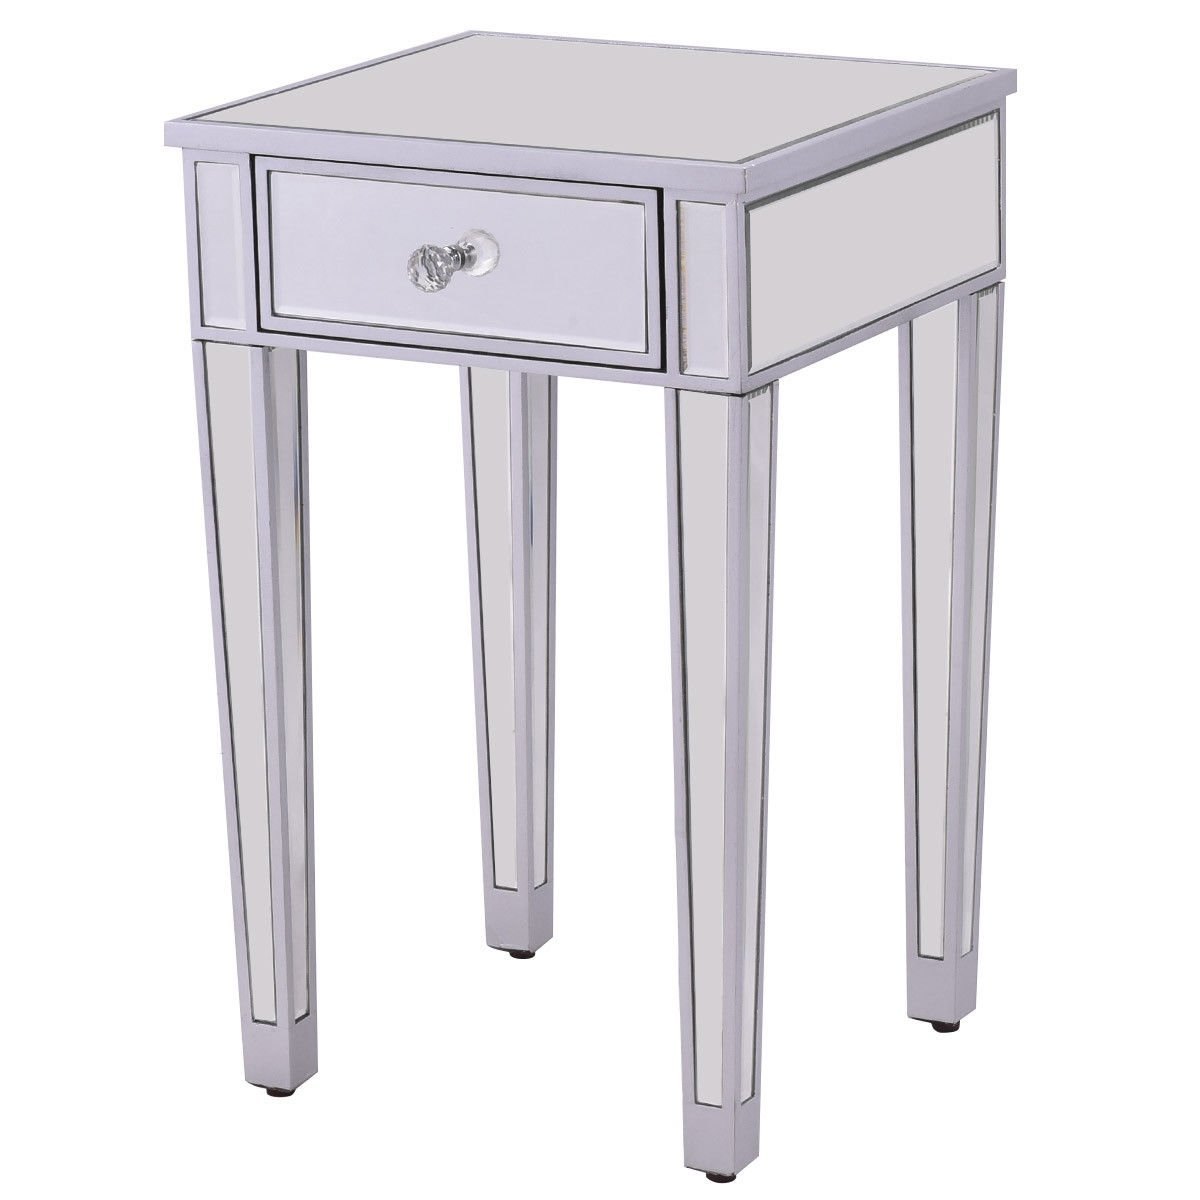 way mirrored accent table nightstand end bedside storage cabinet drawer with sliver free shipping today kitchen pulls antique drop leaf value retro bedroom furniture meyda tiffany